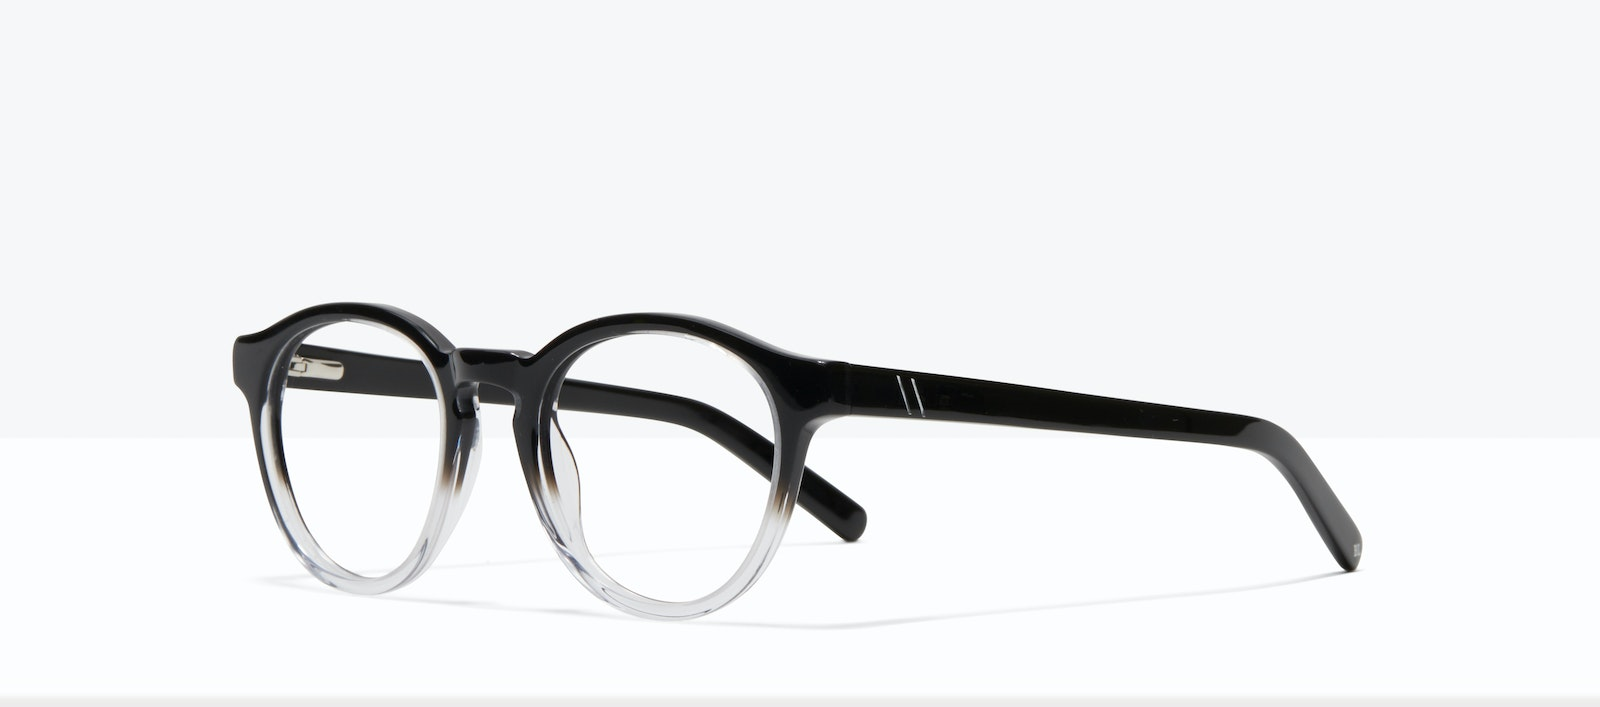 Affordable Fashion Glasses Round Eyeglasses Men Gent S Onyx Clear Tilt